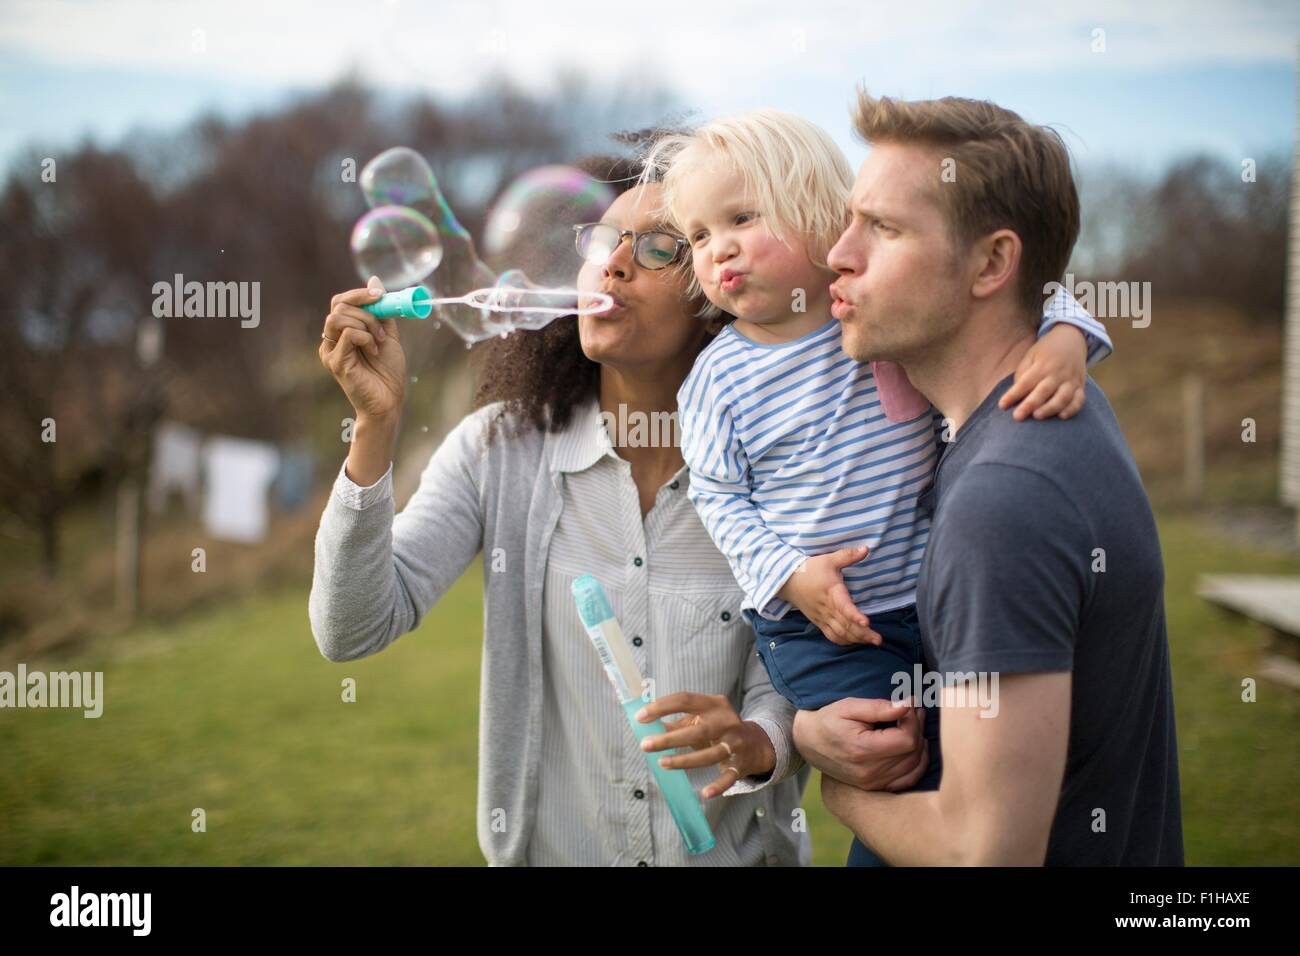 Mother blowing bubbles, father holding son - Stock Image